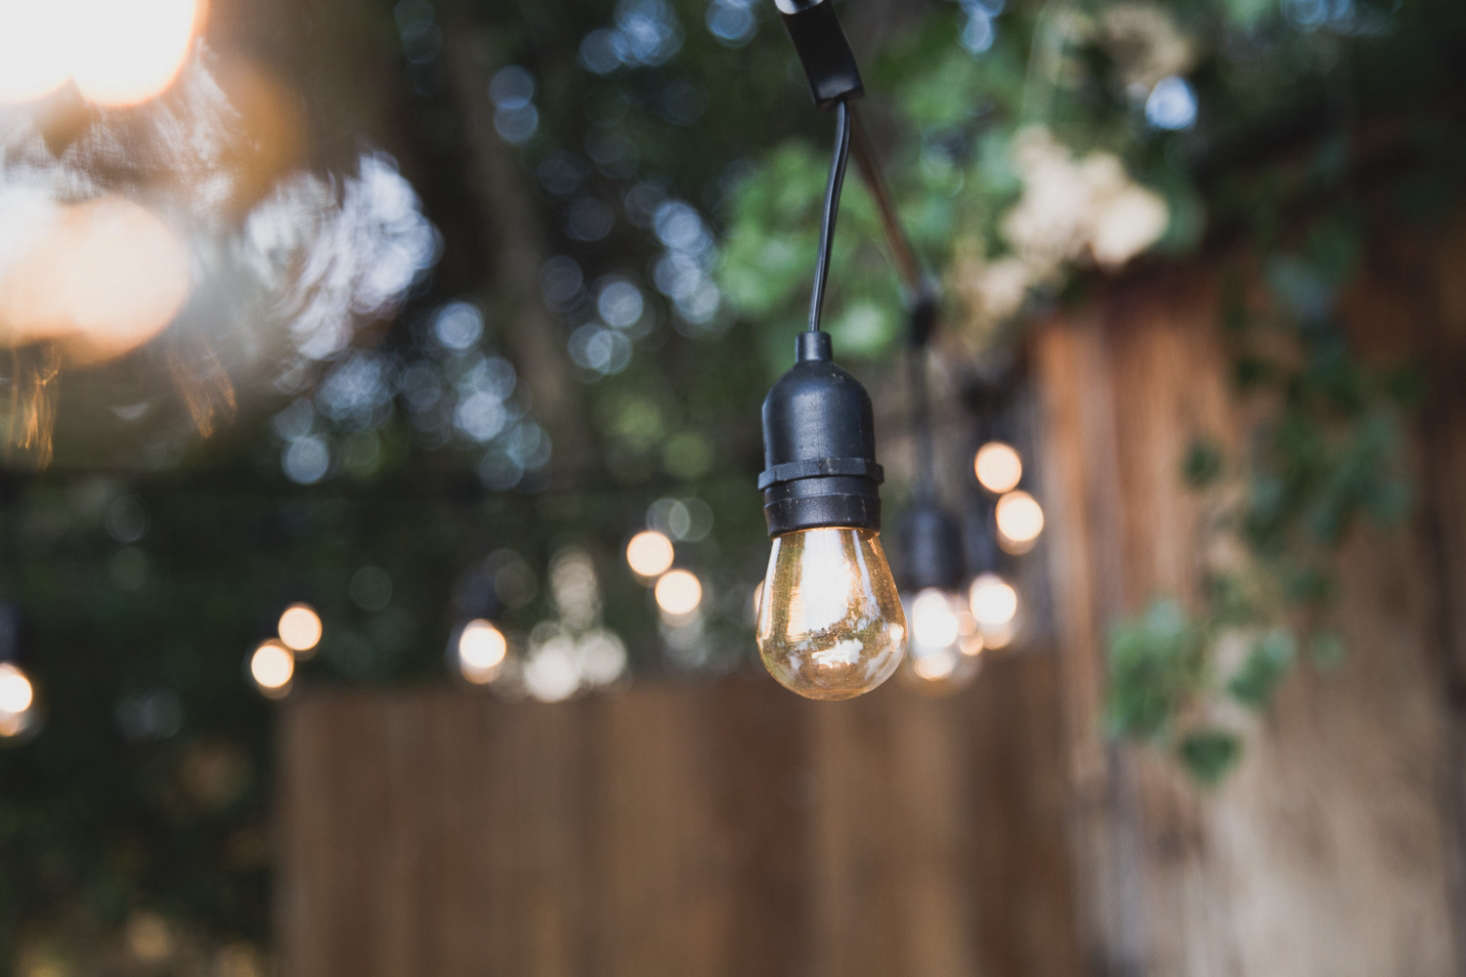 Four strands of Sokani -Foot-Long Outdoor Lights, $.99 each via Amazon, hang from the metal poles.